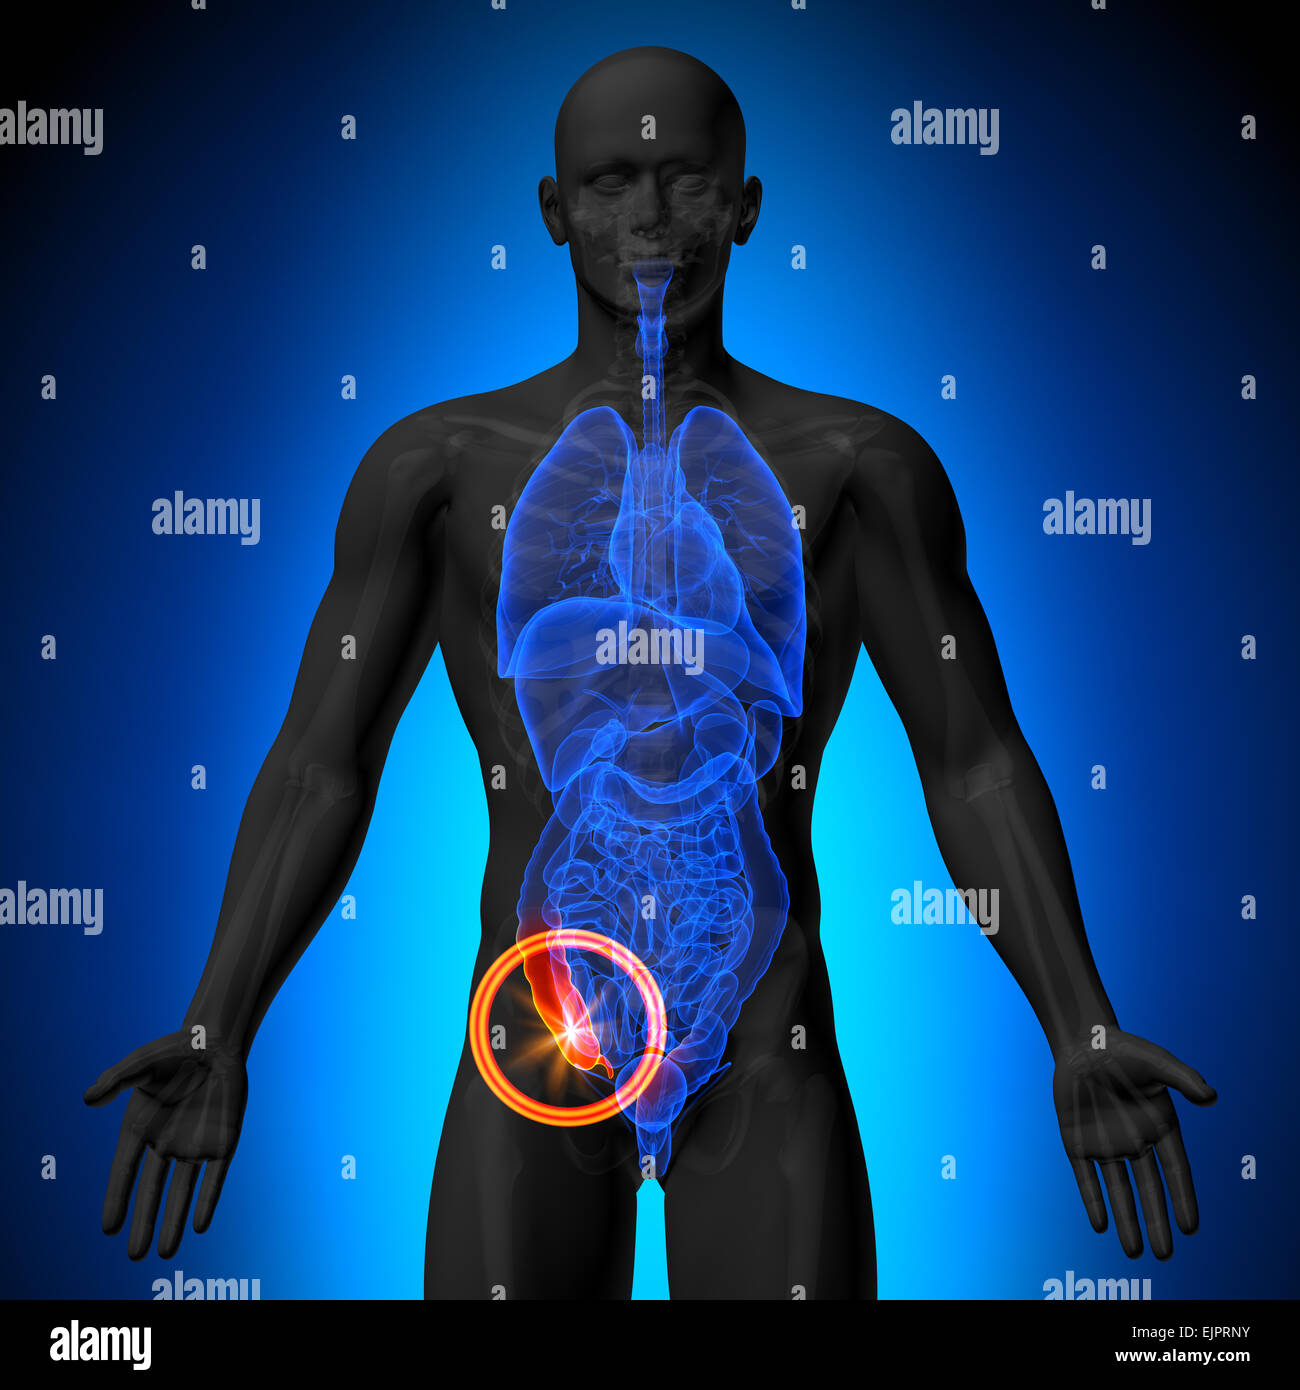 Appendix - Male anatomy of human organs - x-ray view Stock Photo ...